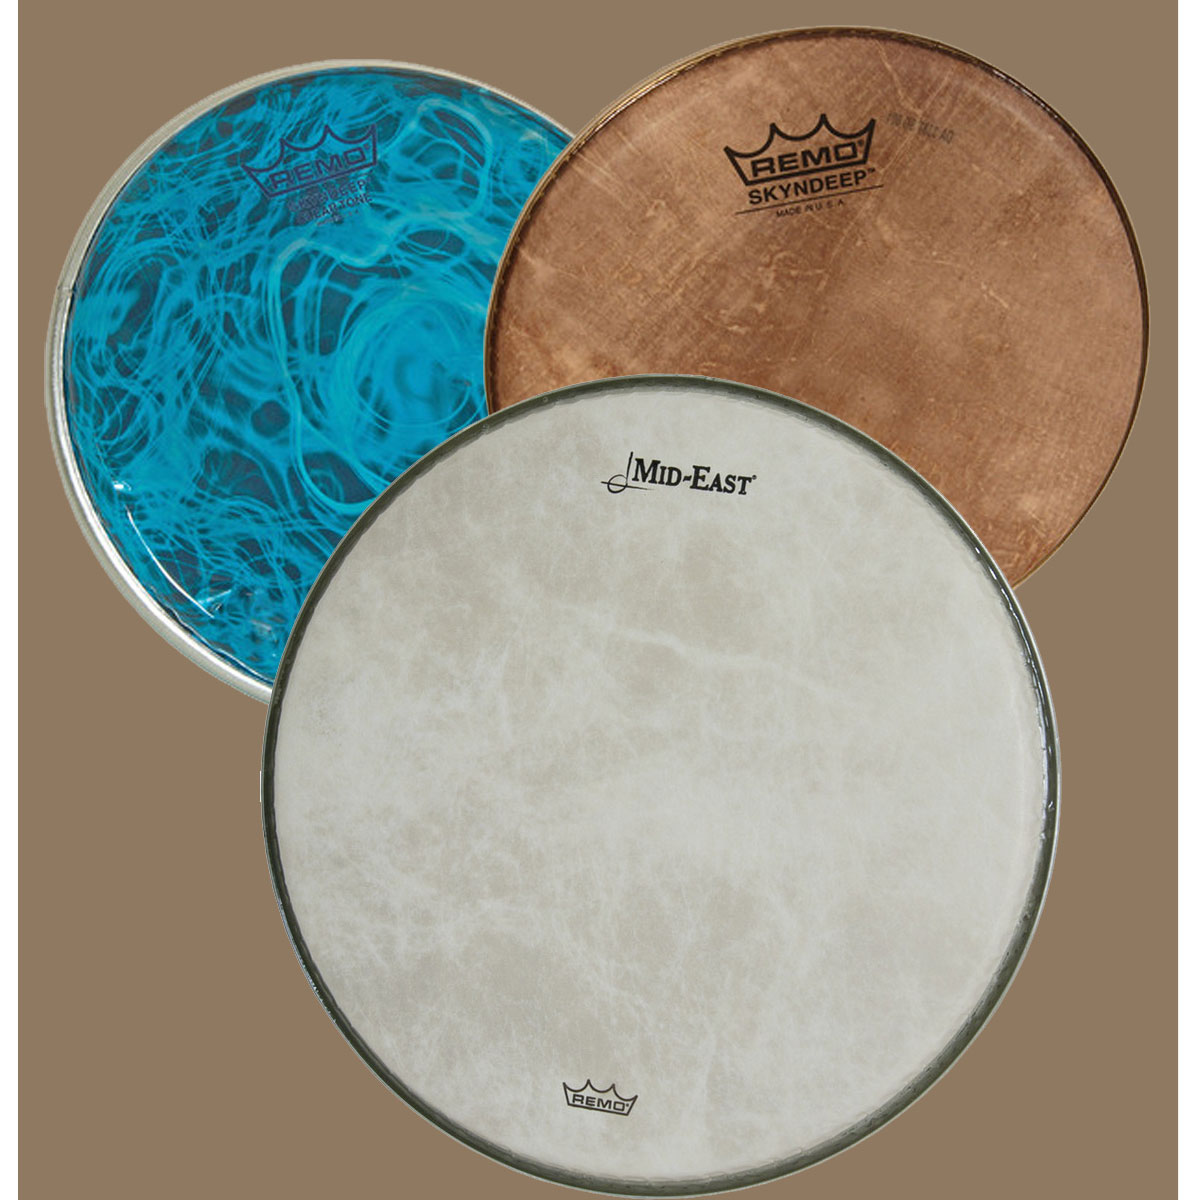 Drum Heads by REMO